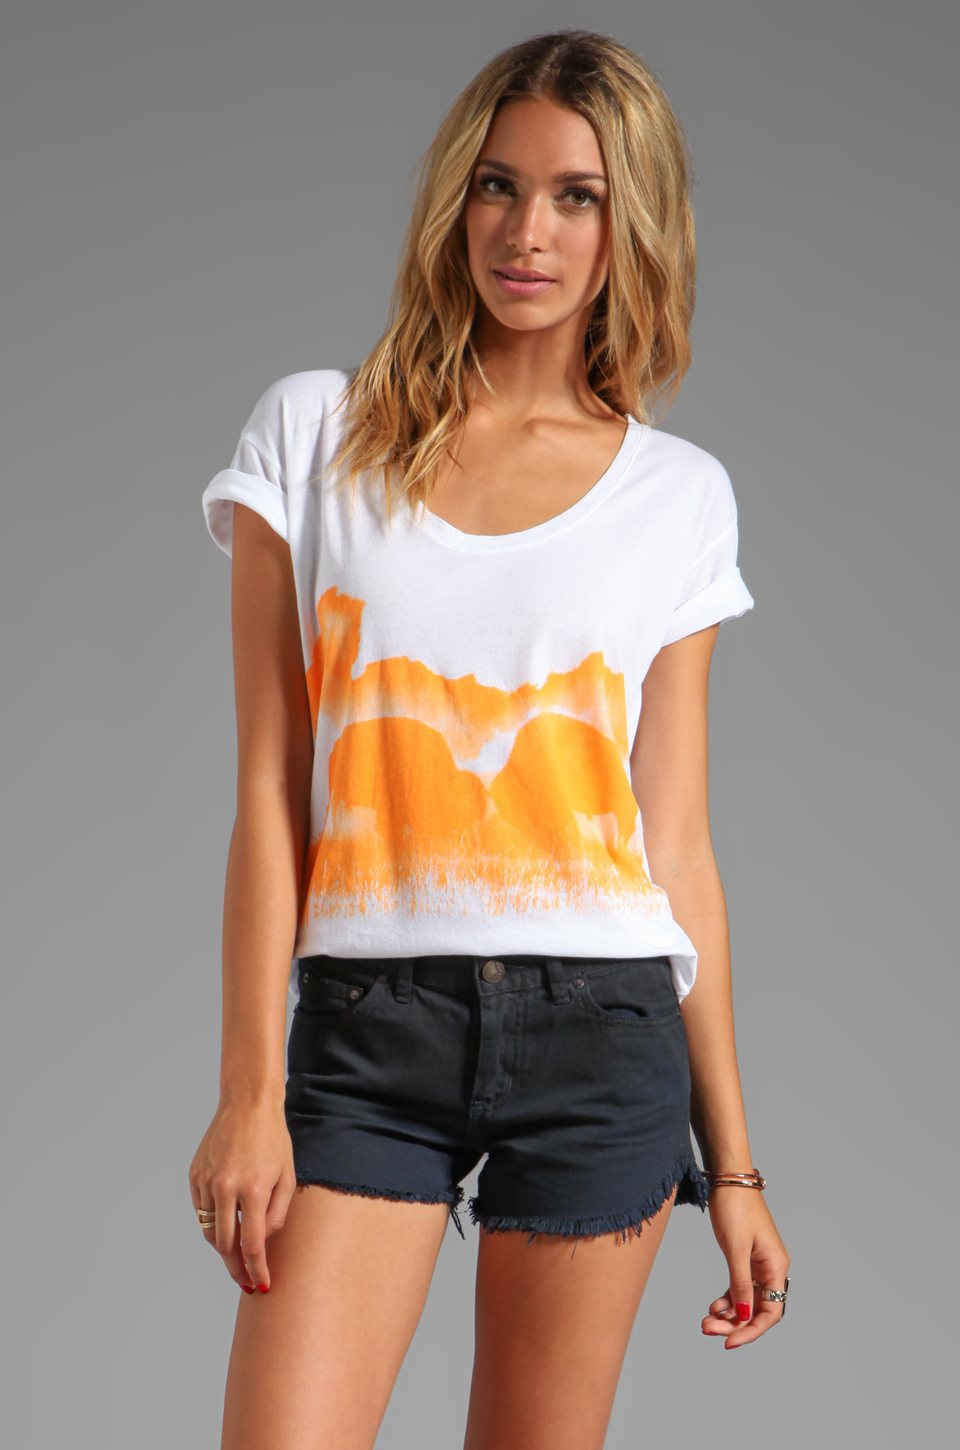 291 Buffalo Kisses Short Sleeve Relax Tee in White